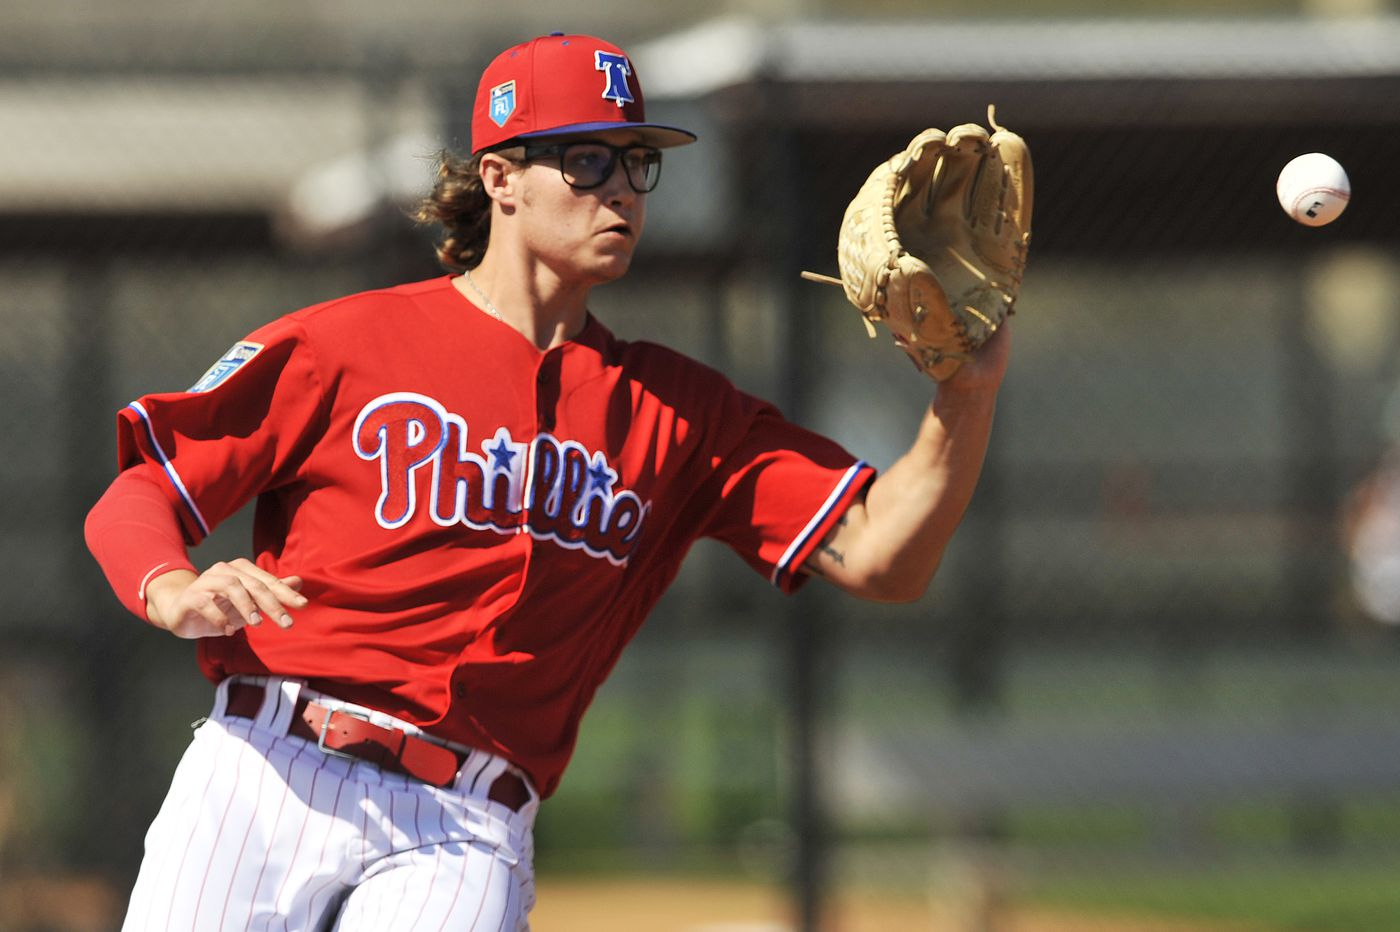 Phillies promote prospect J.D. Hammer and his signature glasses